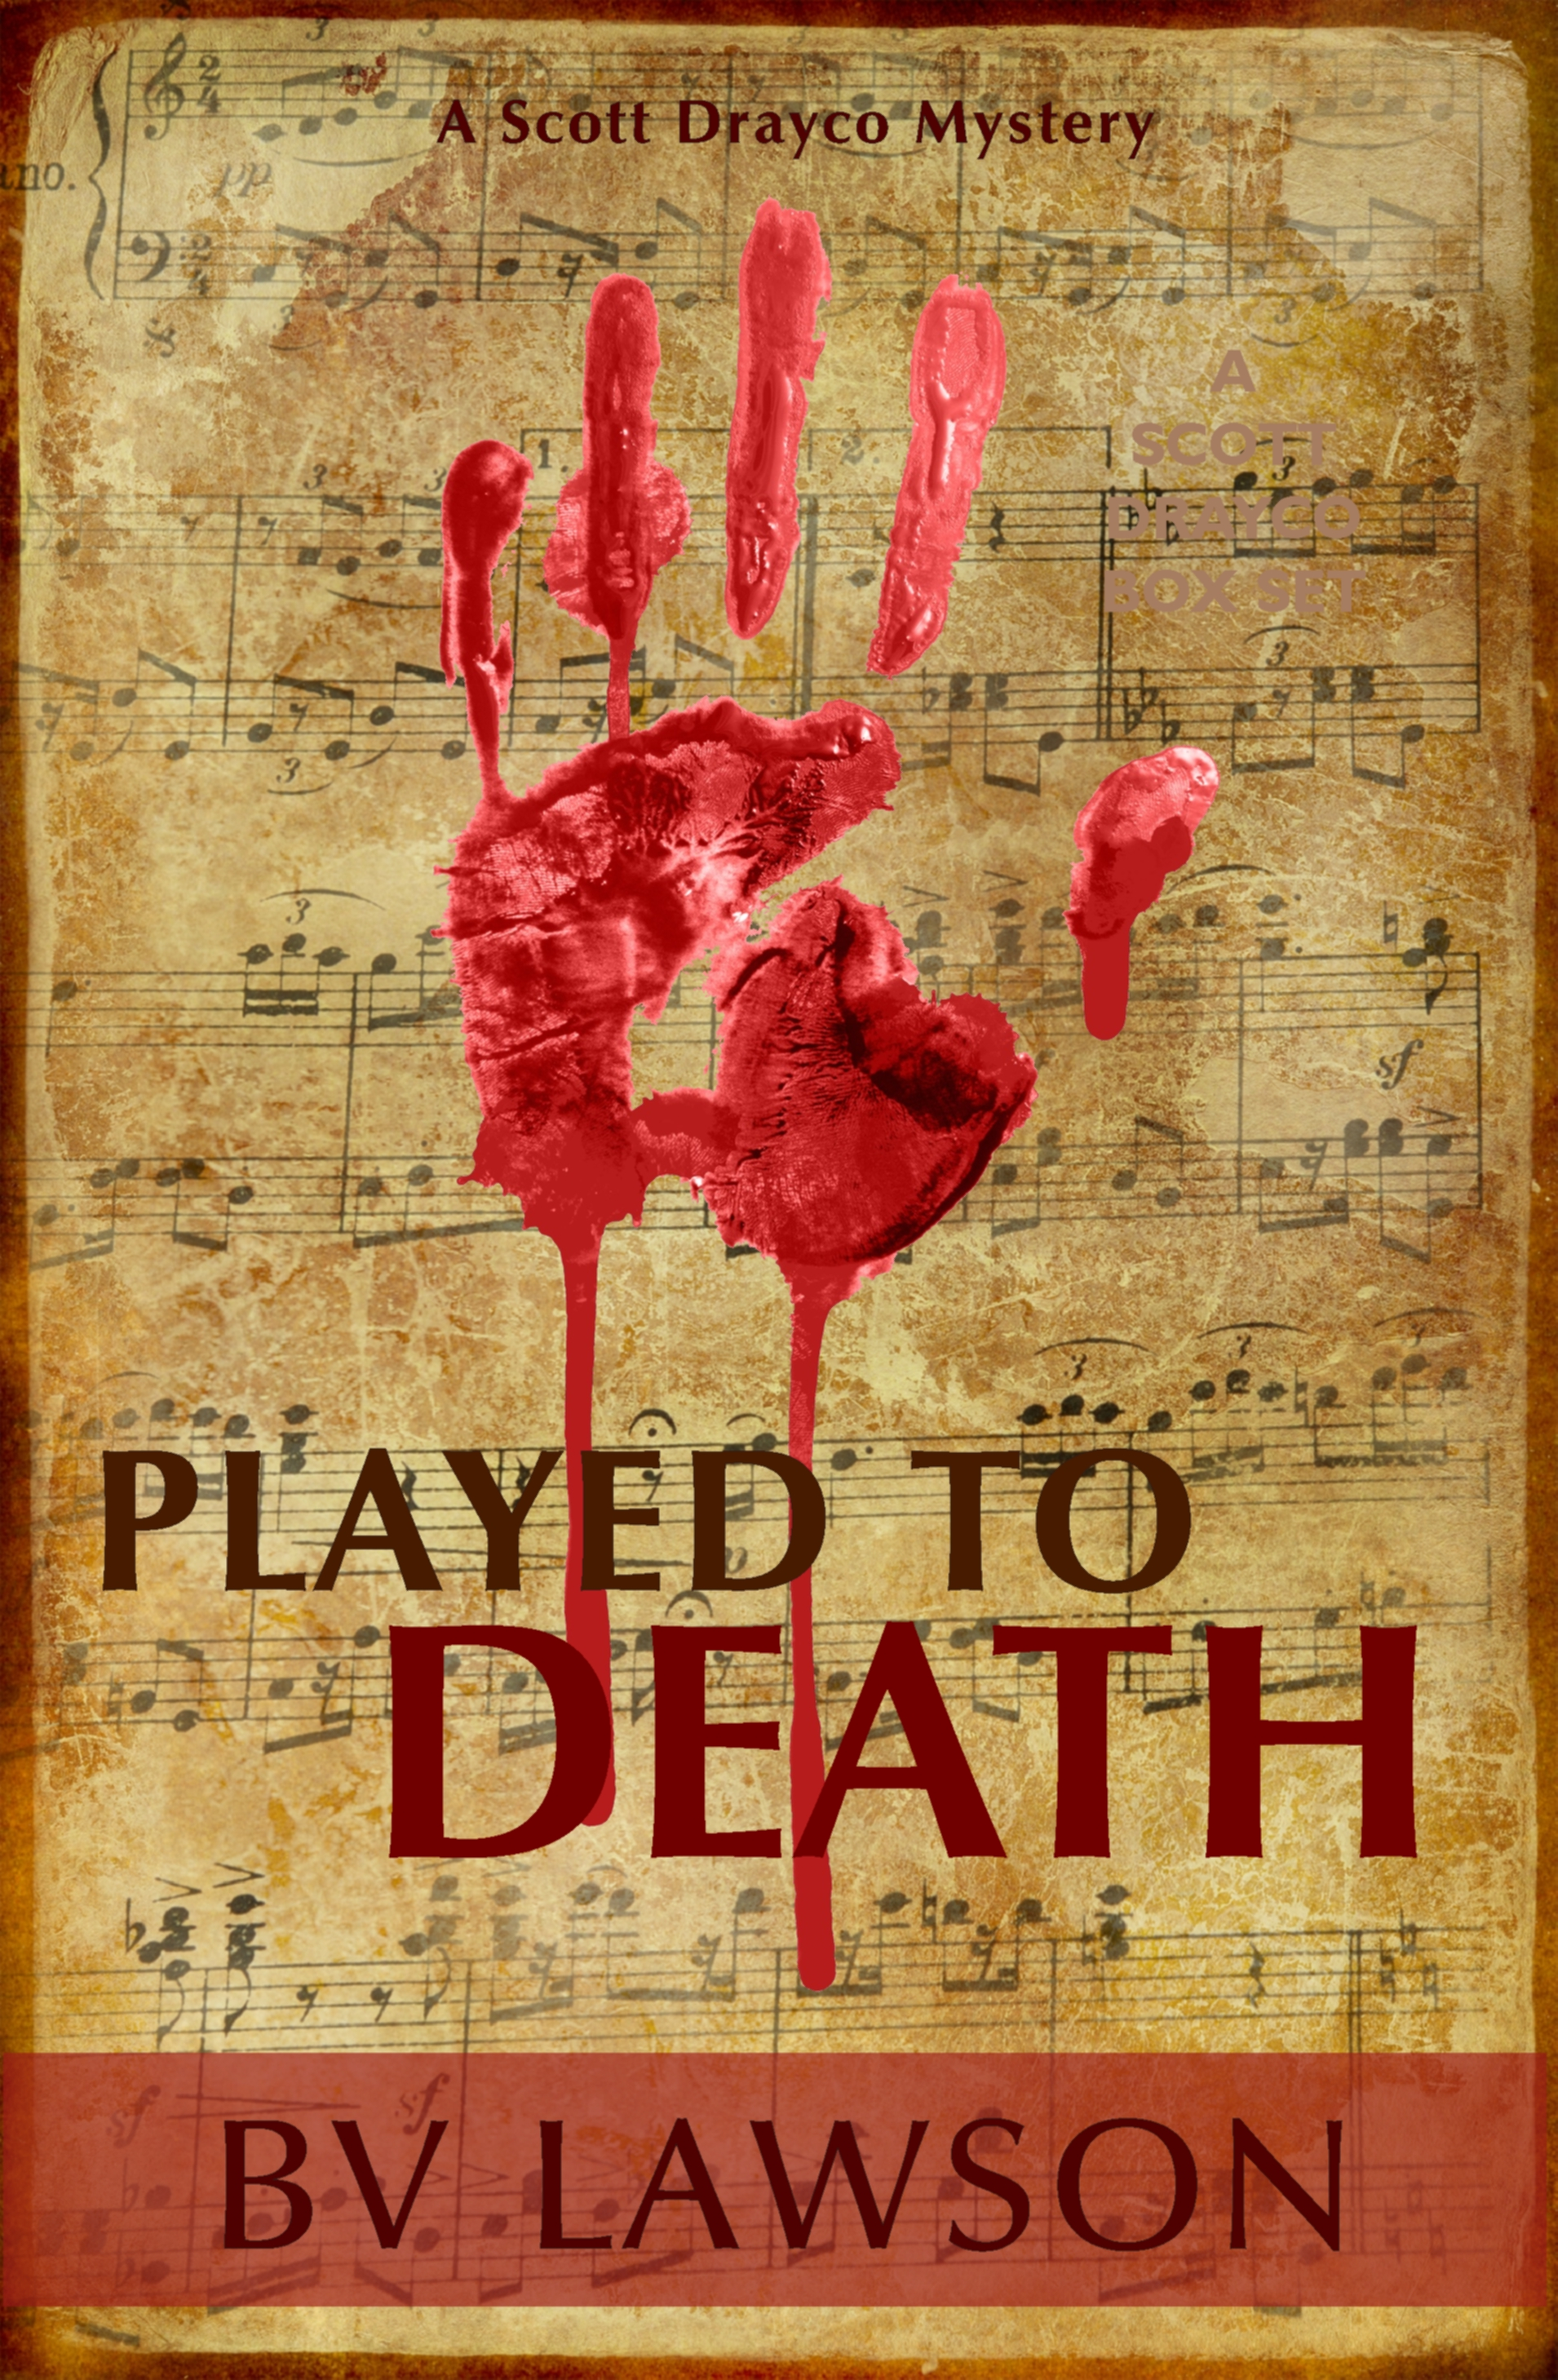 Played to Death: A Scott Drayco Mystery (sst-cccxx)